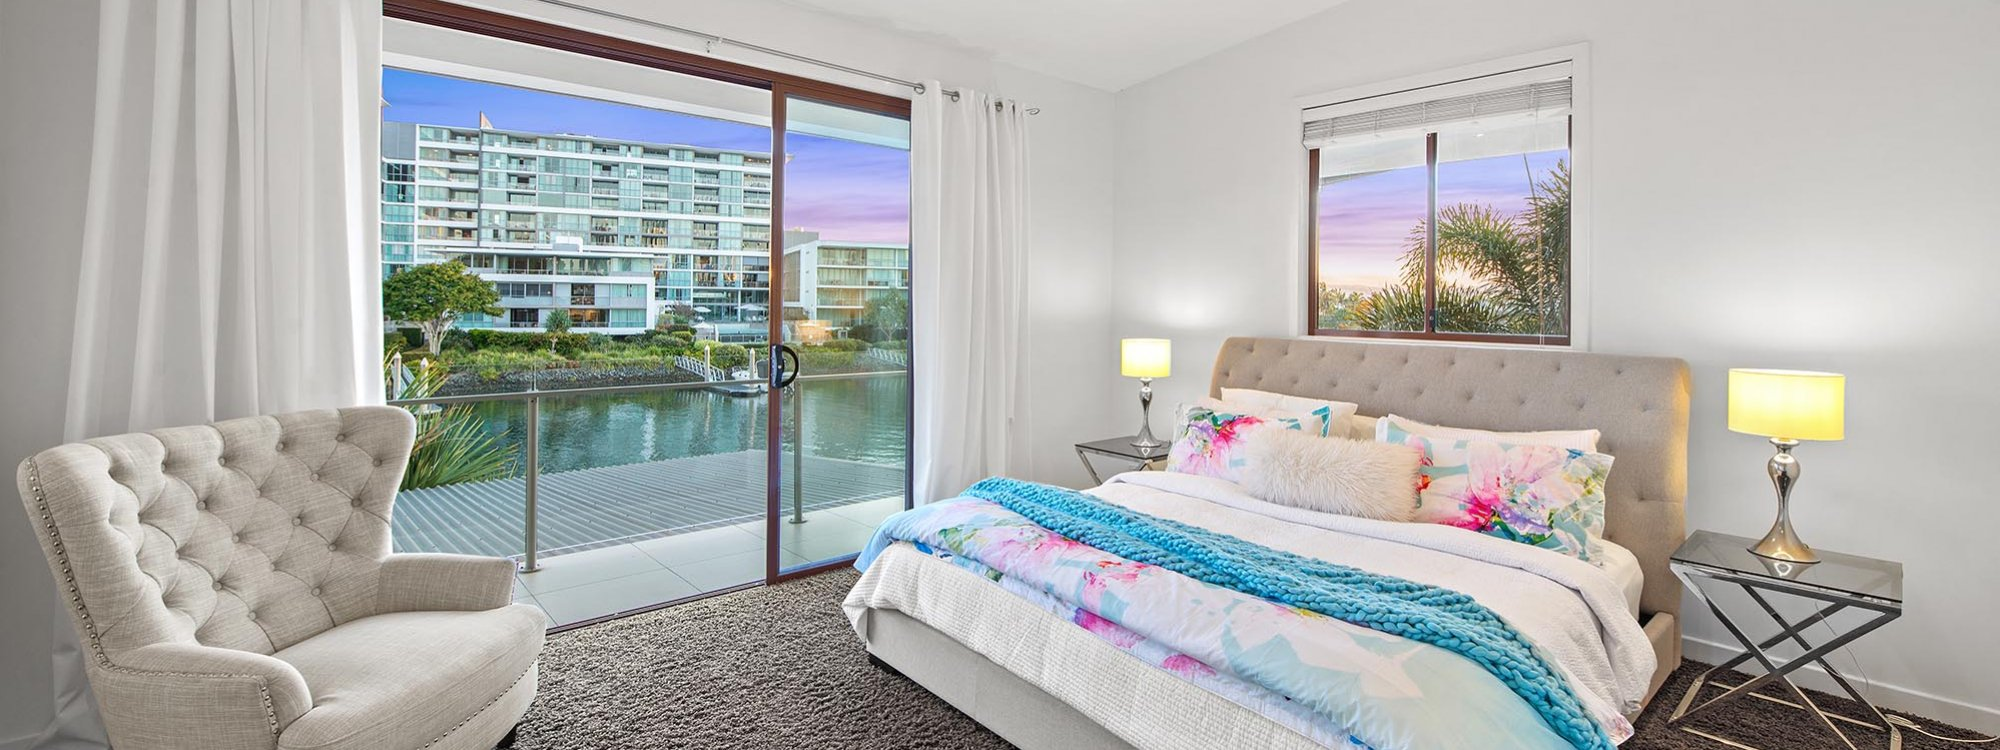 Casa Grande - Broadbeach Waters - Bedroom 4b